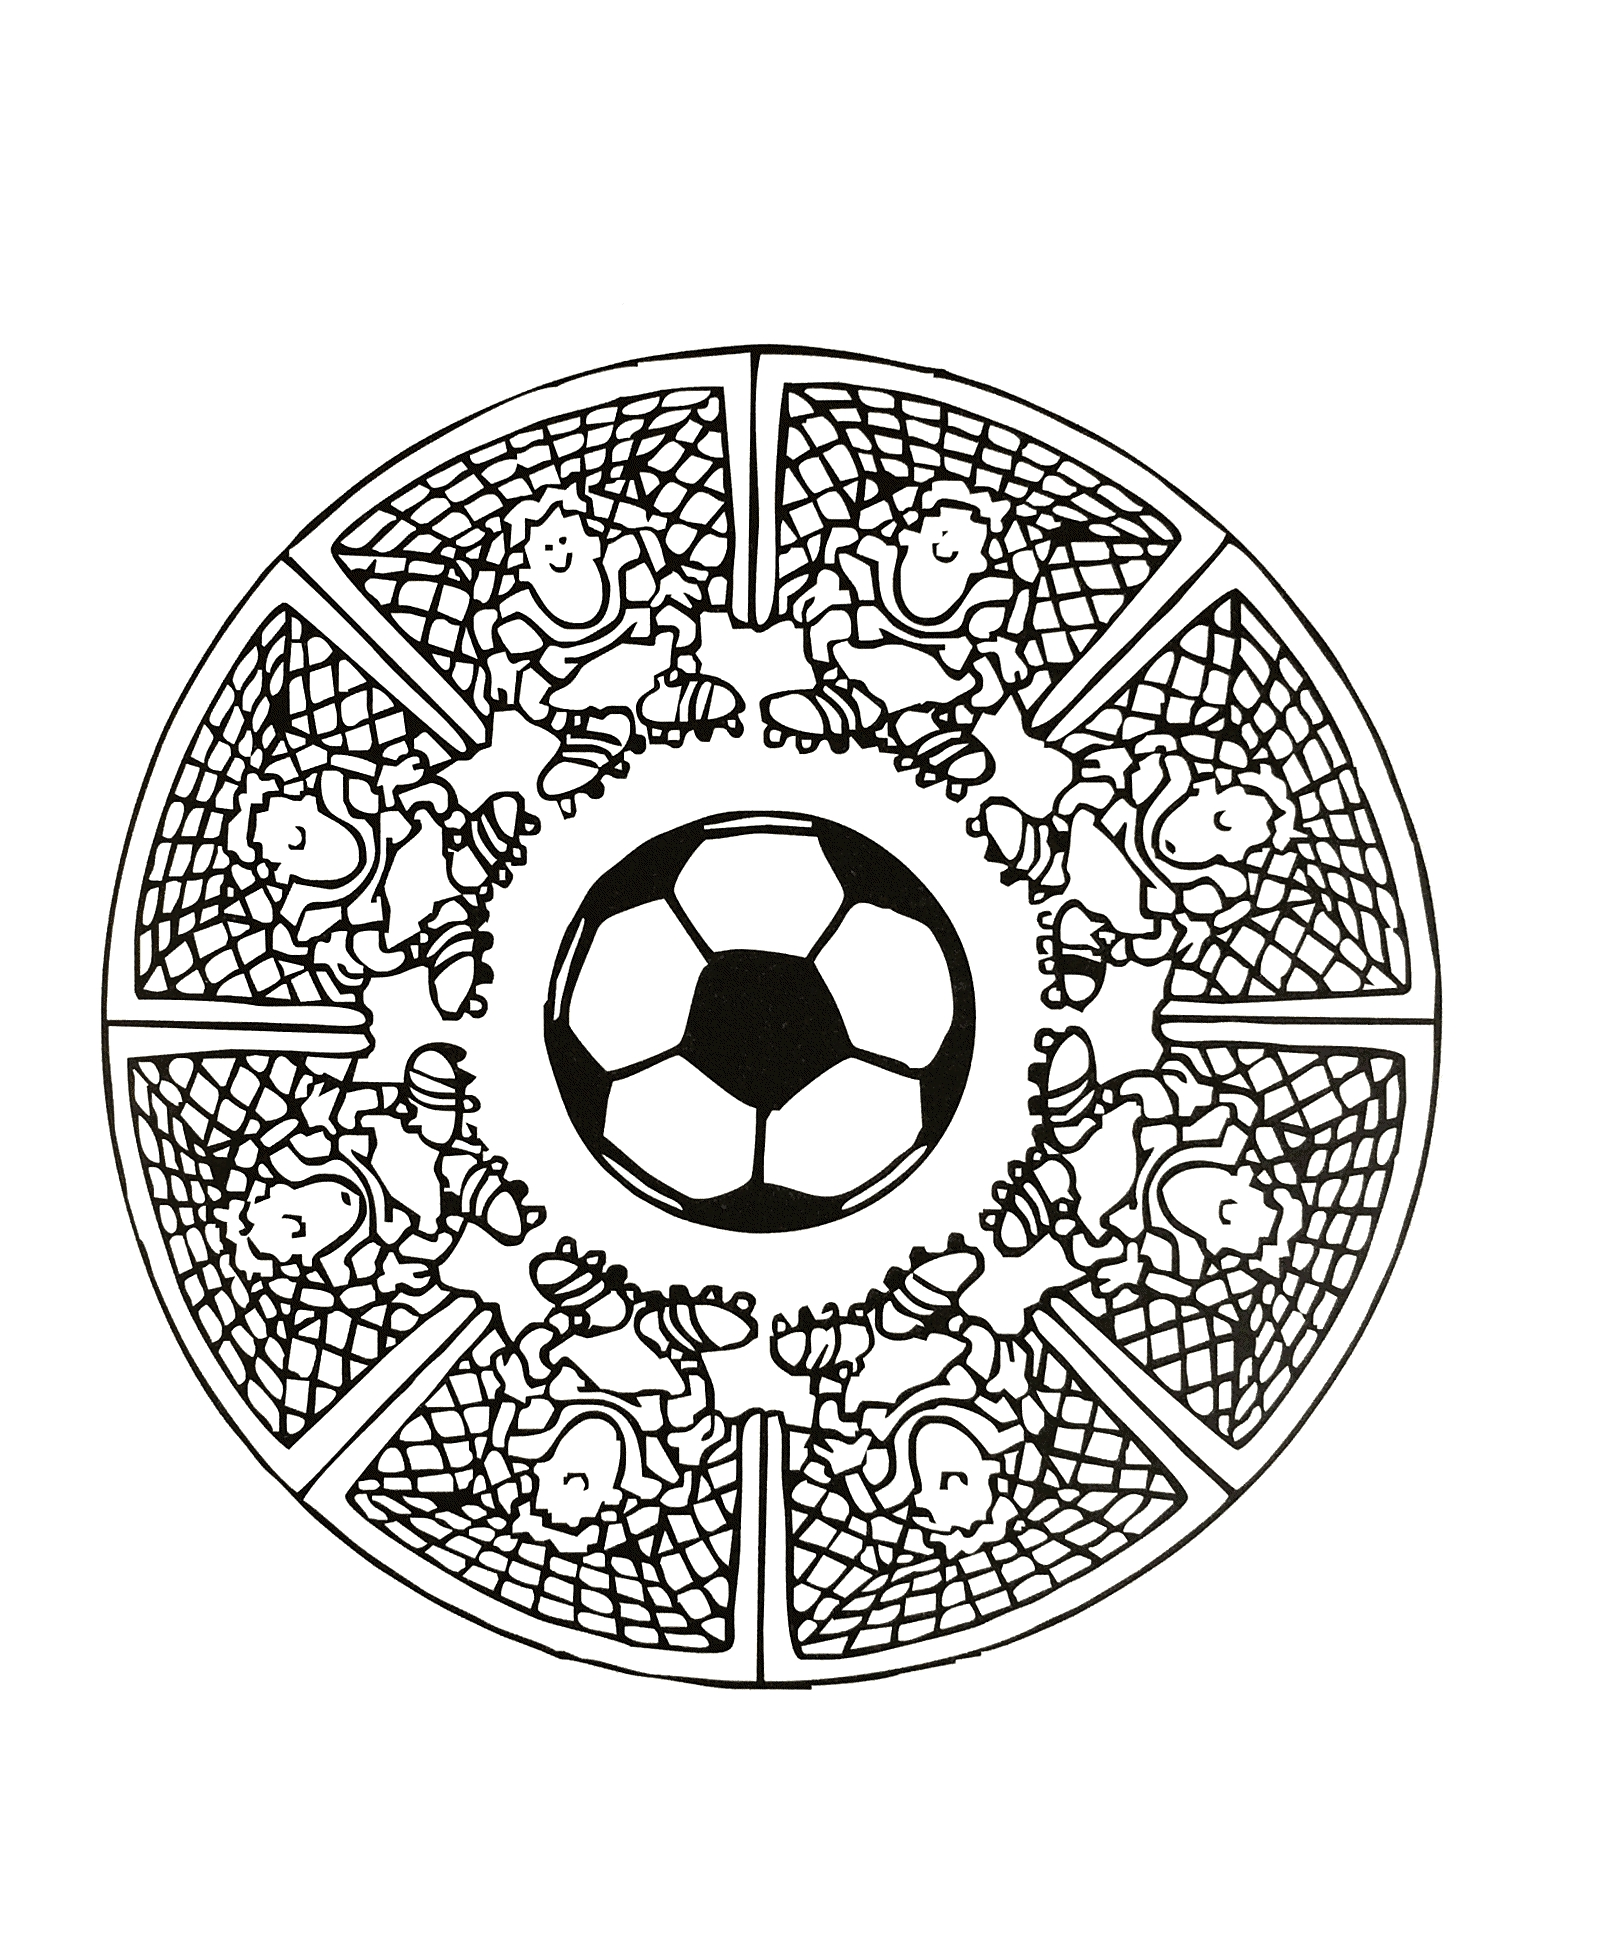 creation coloring pages - image=characters mandalas foot 3